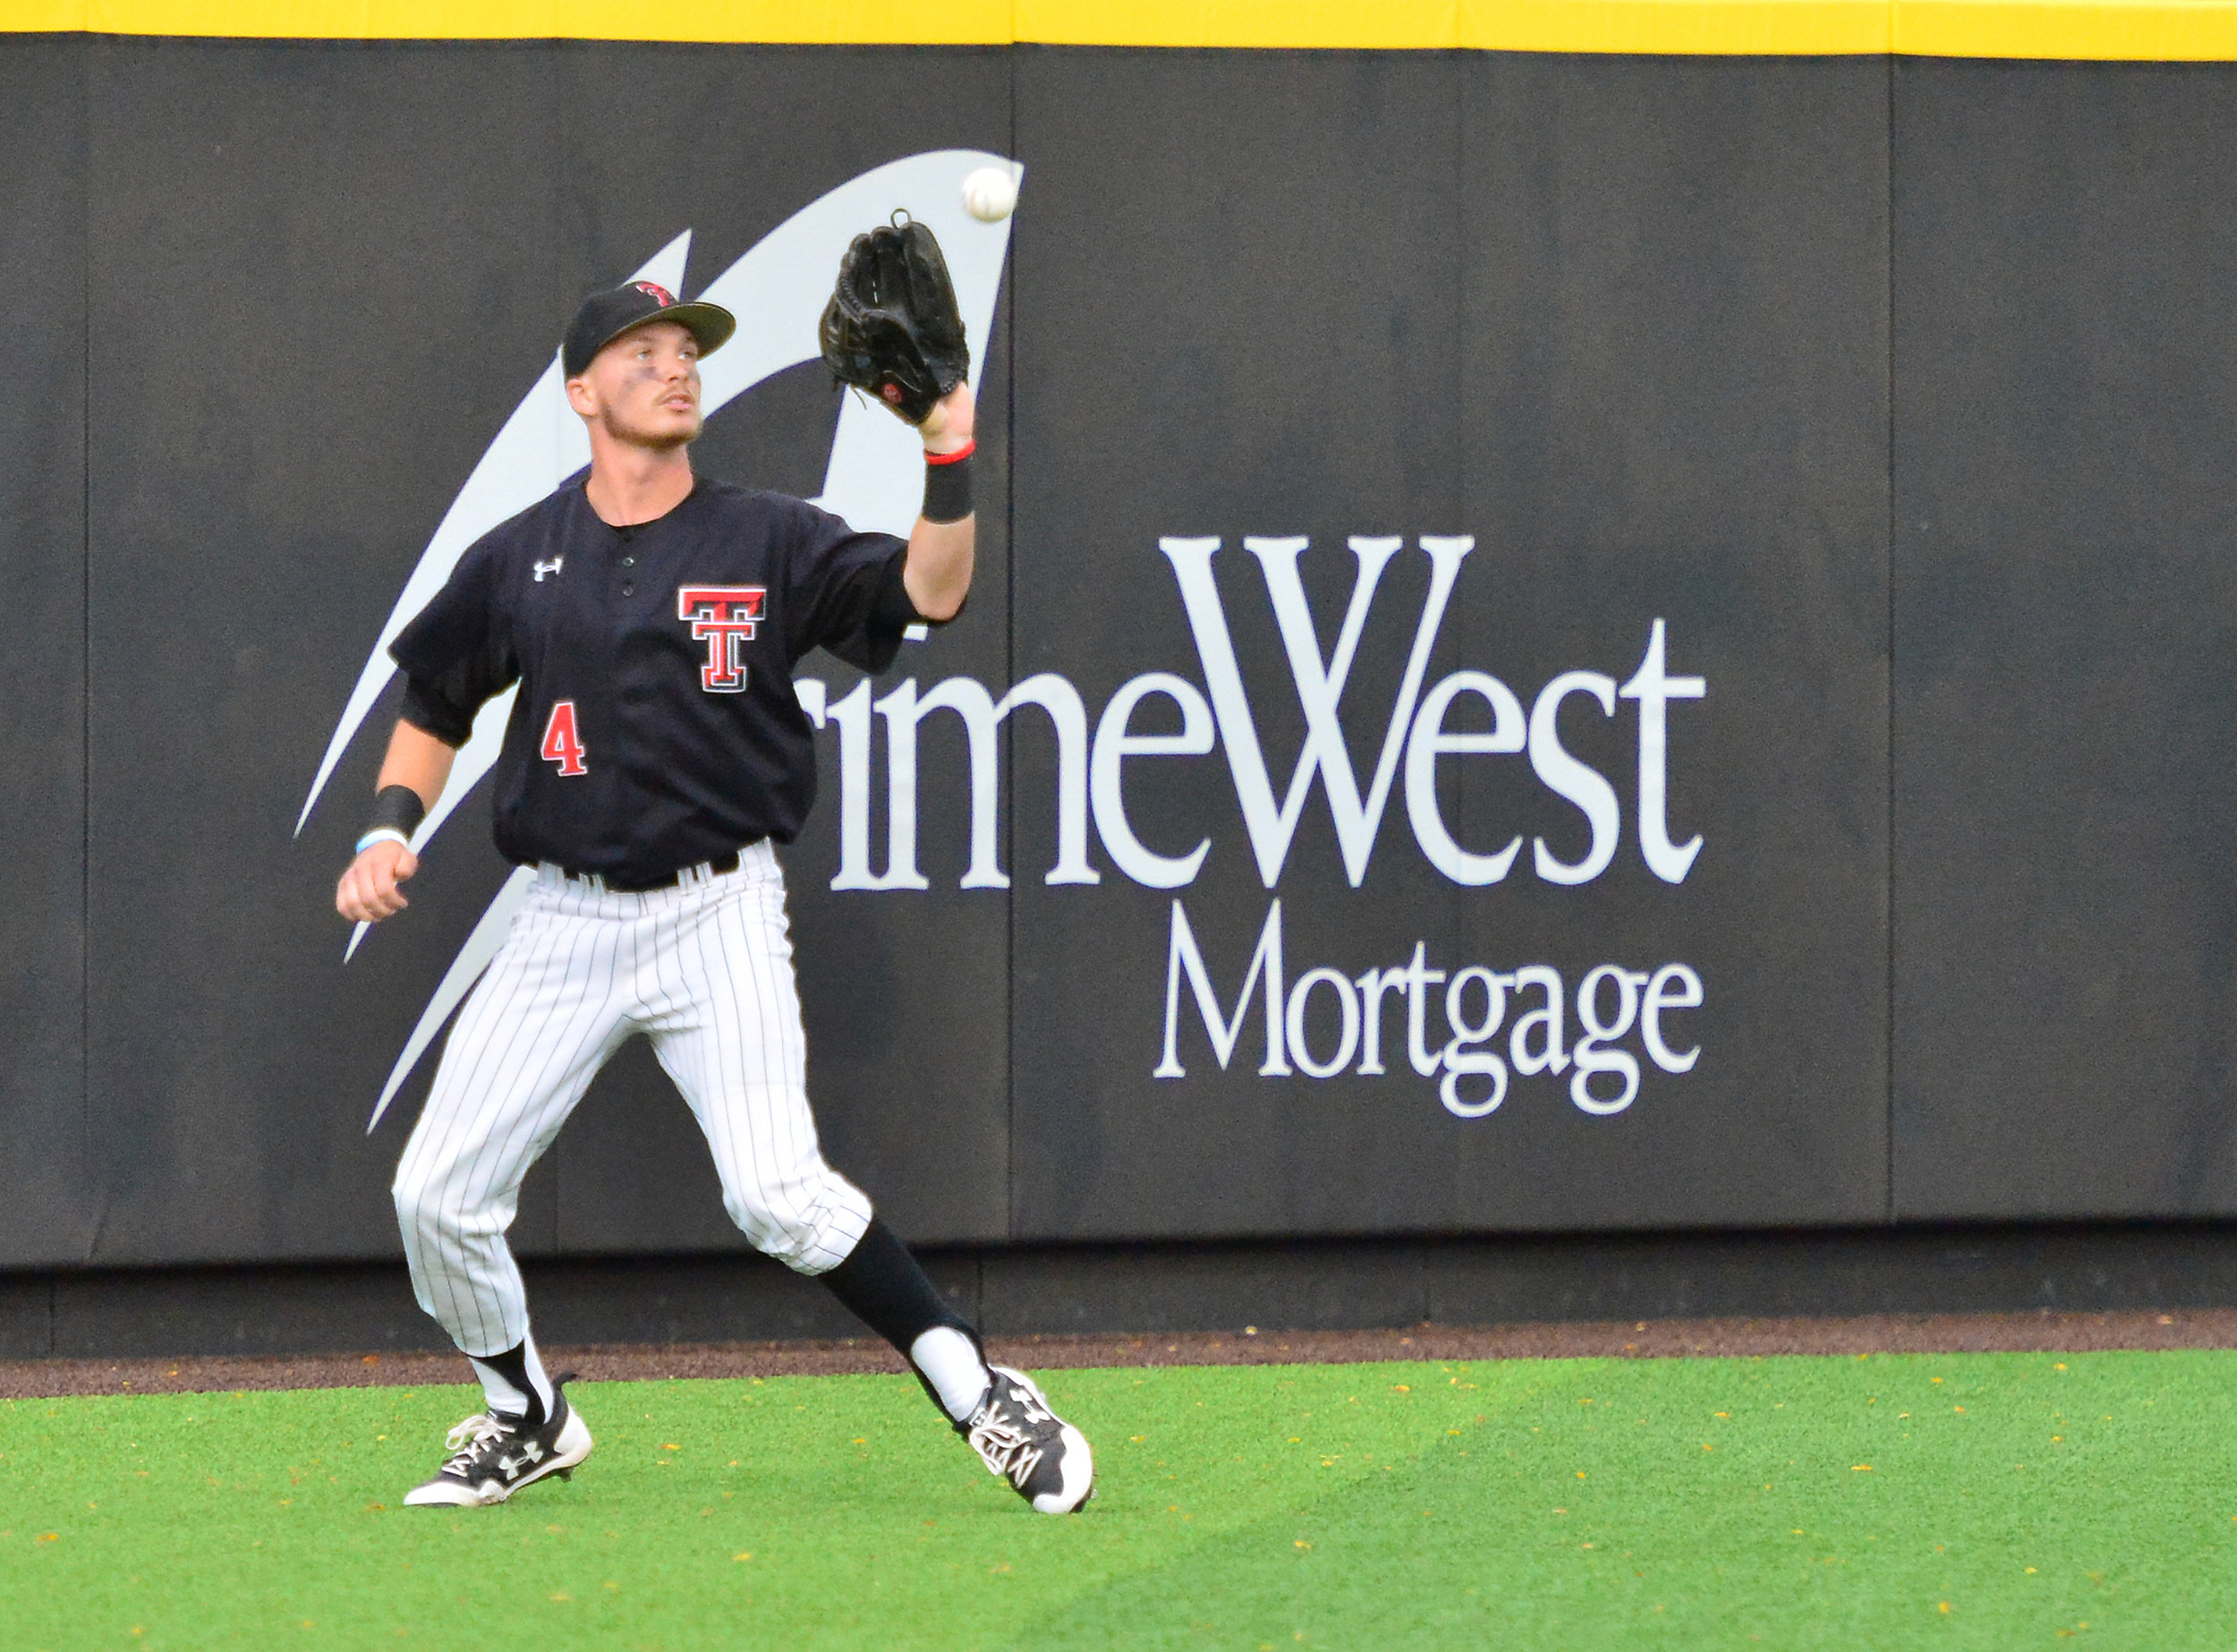 Texas Tech Freshman Gets All-American Honors